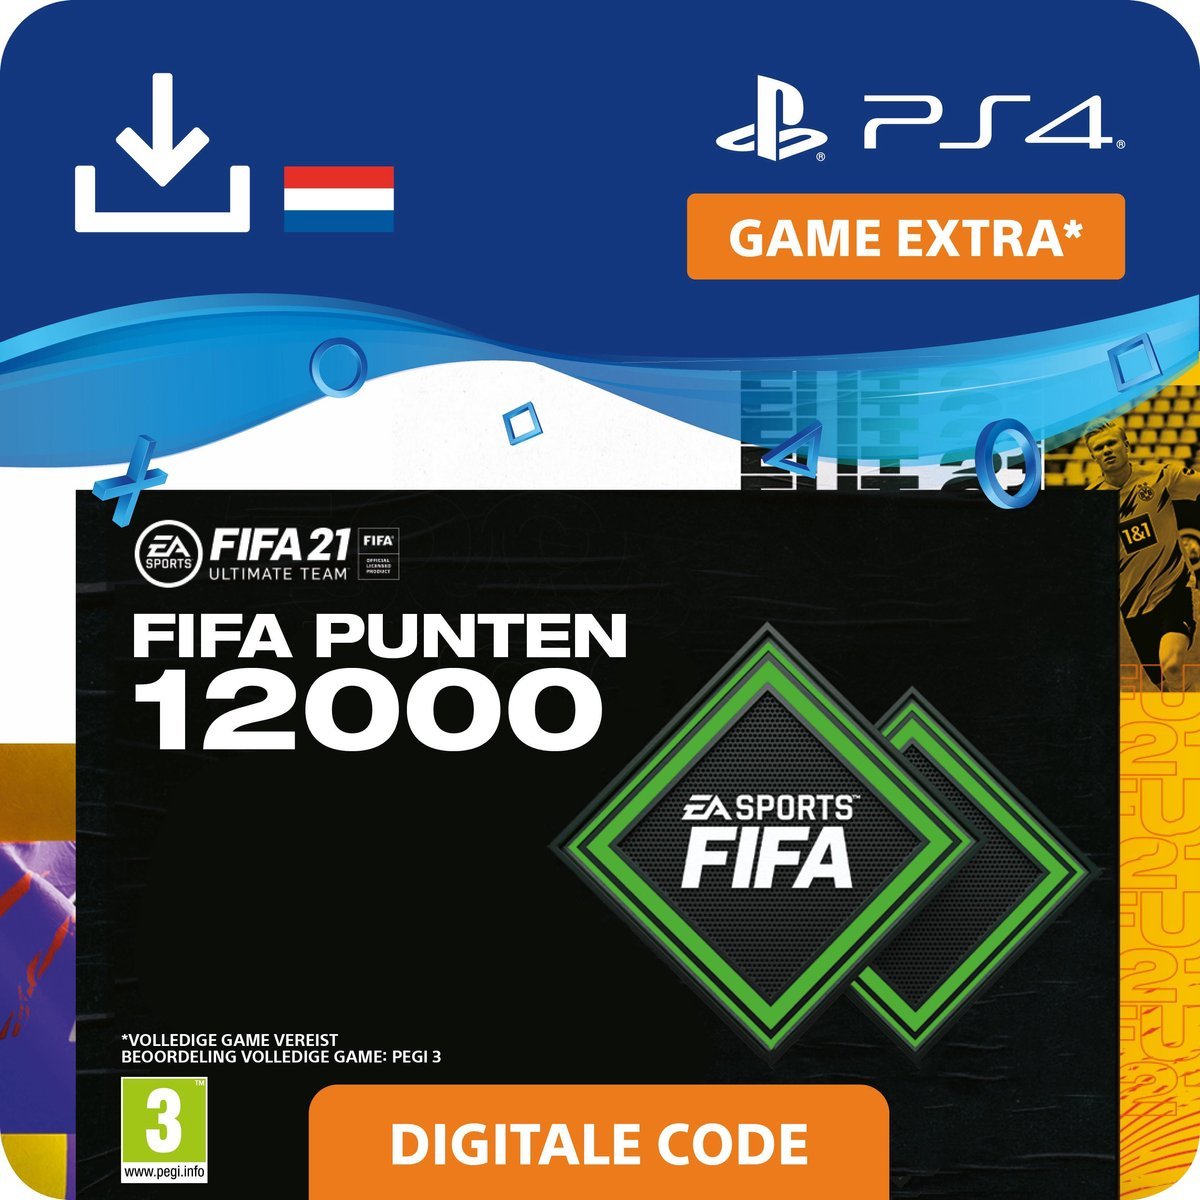 12.000 FUT Punten - FIFA 21 Ultimate Team - In-Game tegoed   PS4/PS5 Download - NL